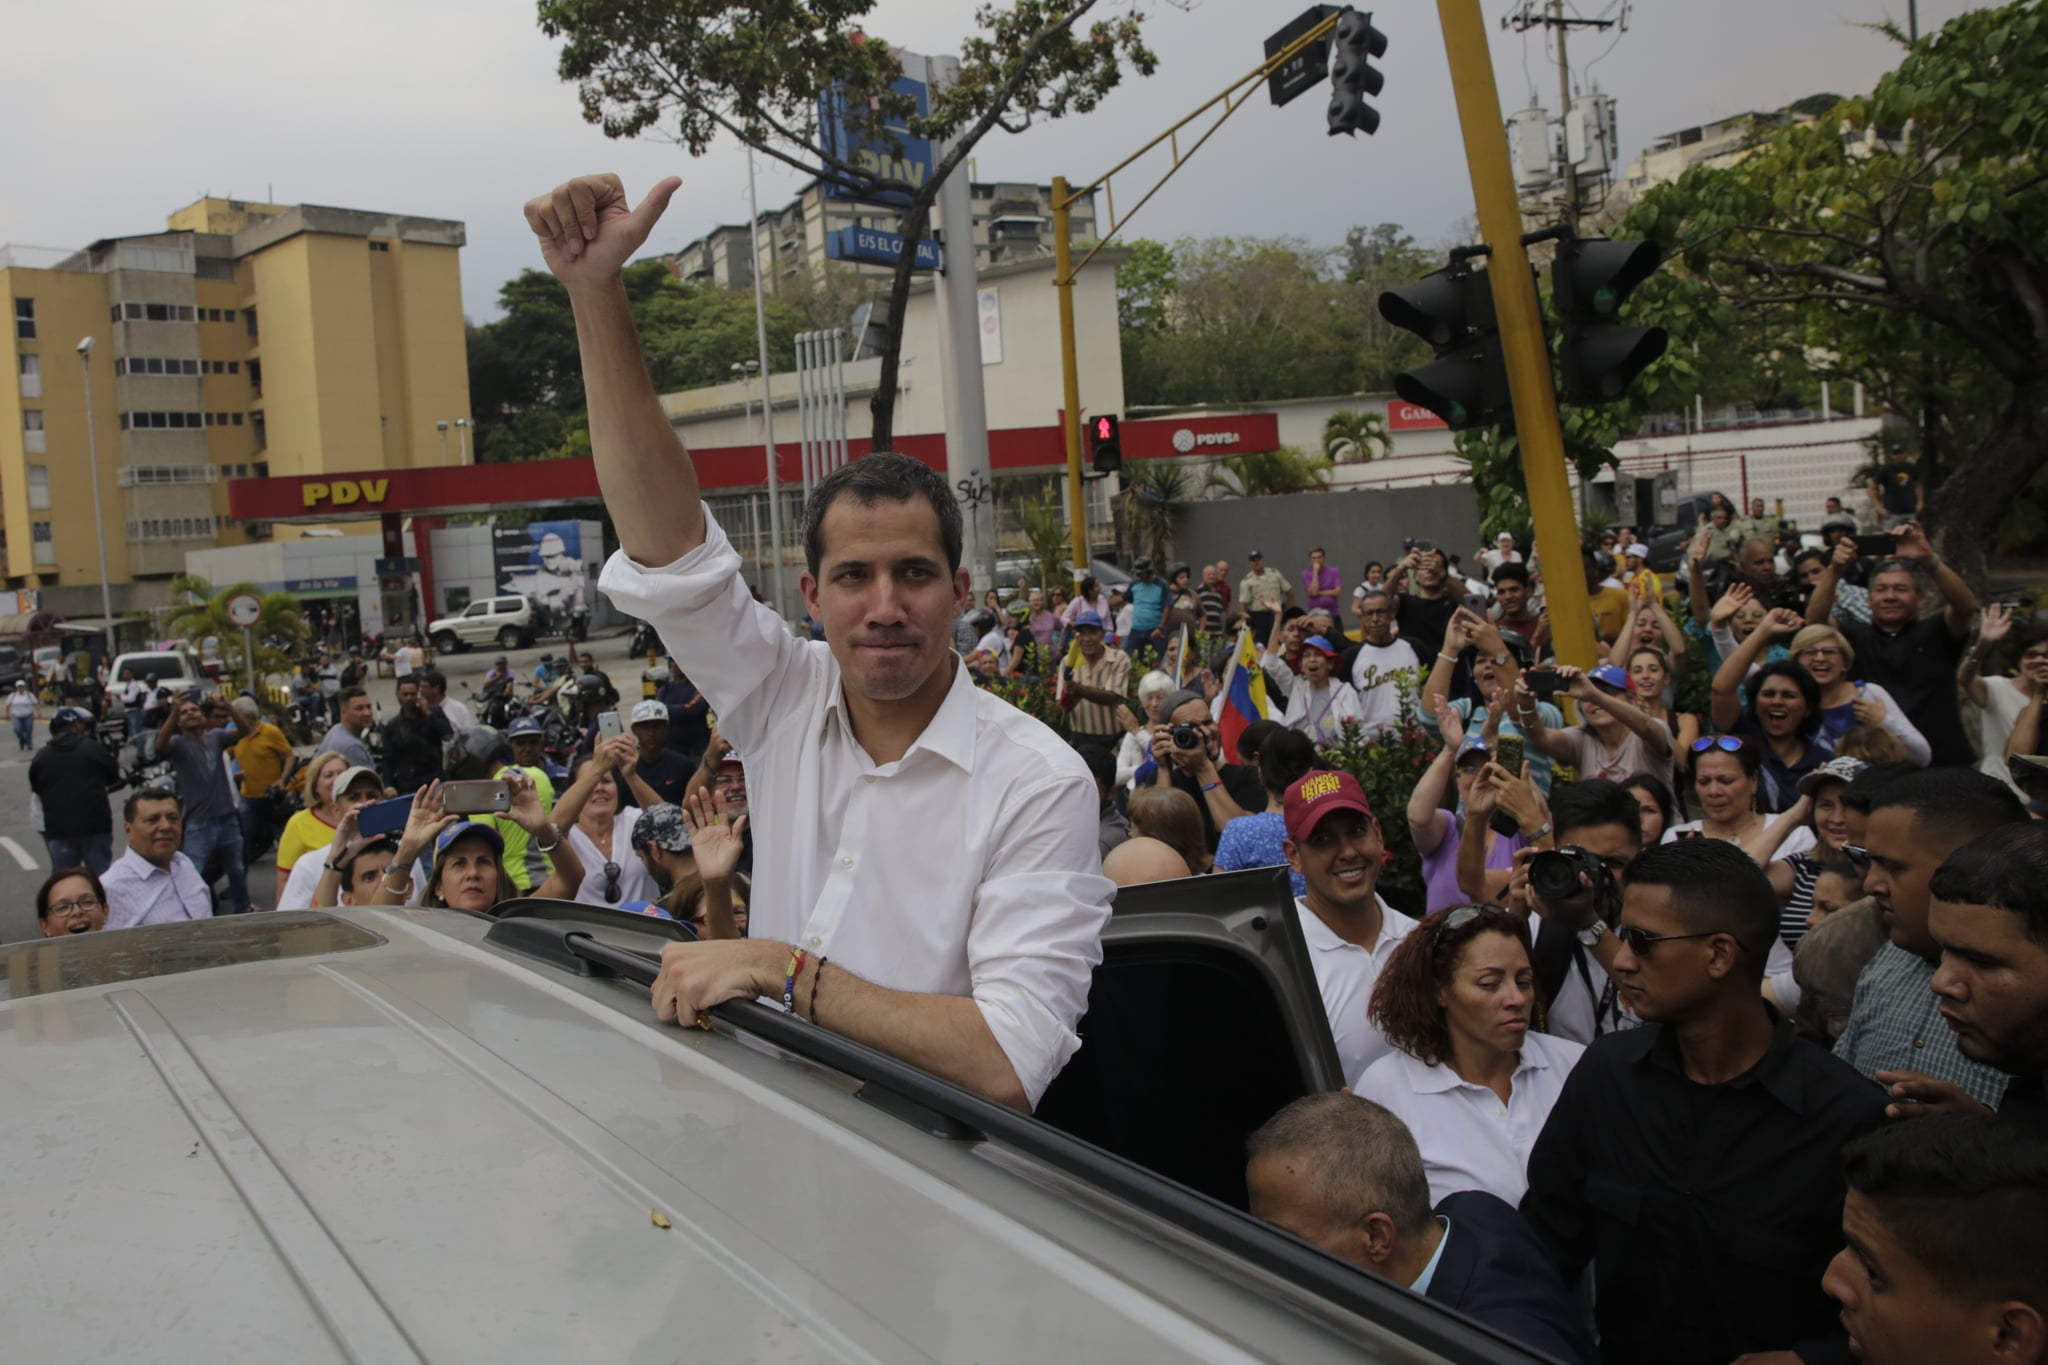 CARACAS, VENEZUELA - APRIL 10: Venezuelan opposition leader Juan Guaido, recognized by many members of the international community as the country's rightful interim ruler, greets people during a rally on April 10, 2019 in Caracas, Venezuela. During his speech at the Security Council of UN today, Vice President of United States Mike Pence asked UN to revoke the credentials of Venezuelaís ambassador to the UN and  recognize Guaido as interim President. (Photo by Marco Bello/Getty Images)